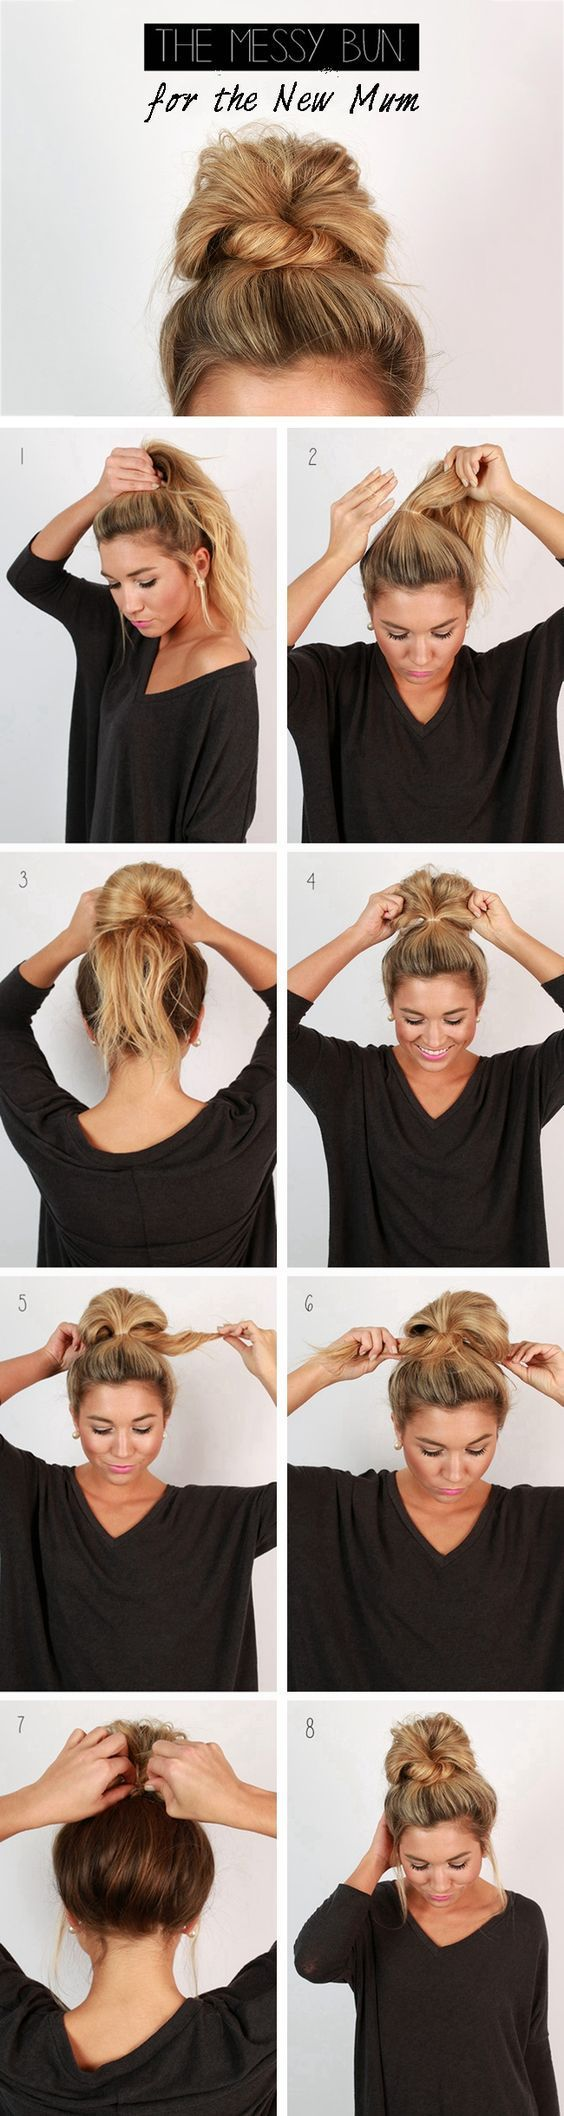 Fast Easy Messy Bun Updo For The New Mum Step By Step Hair Tutorial Hair Styles Long Hair Styles Easy Updo Hairstyles